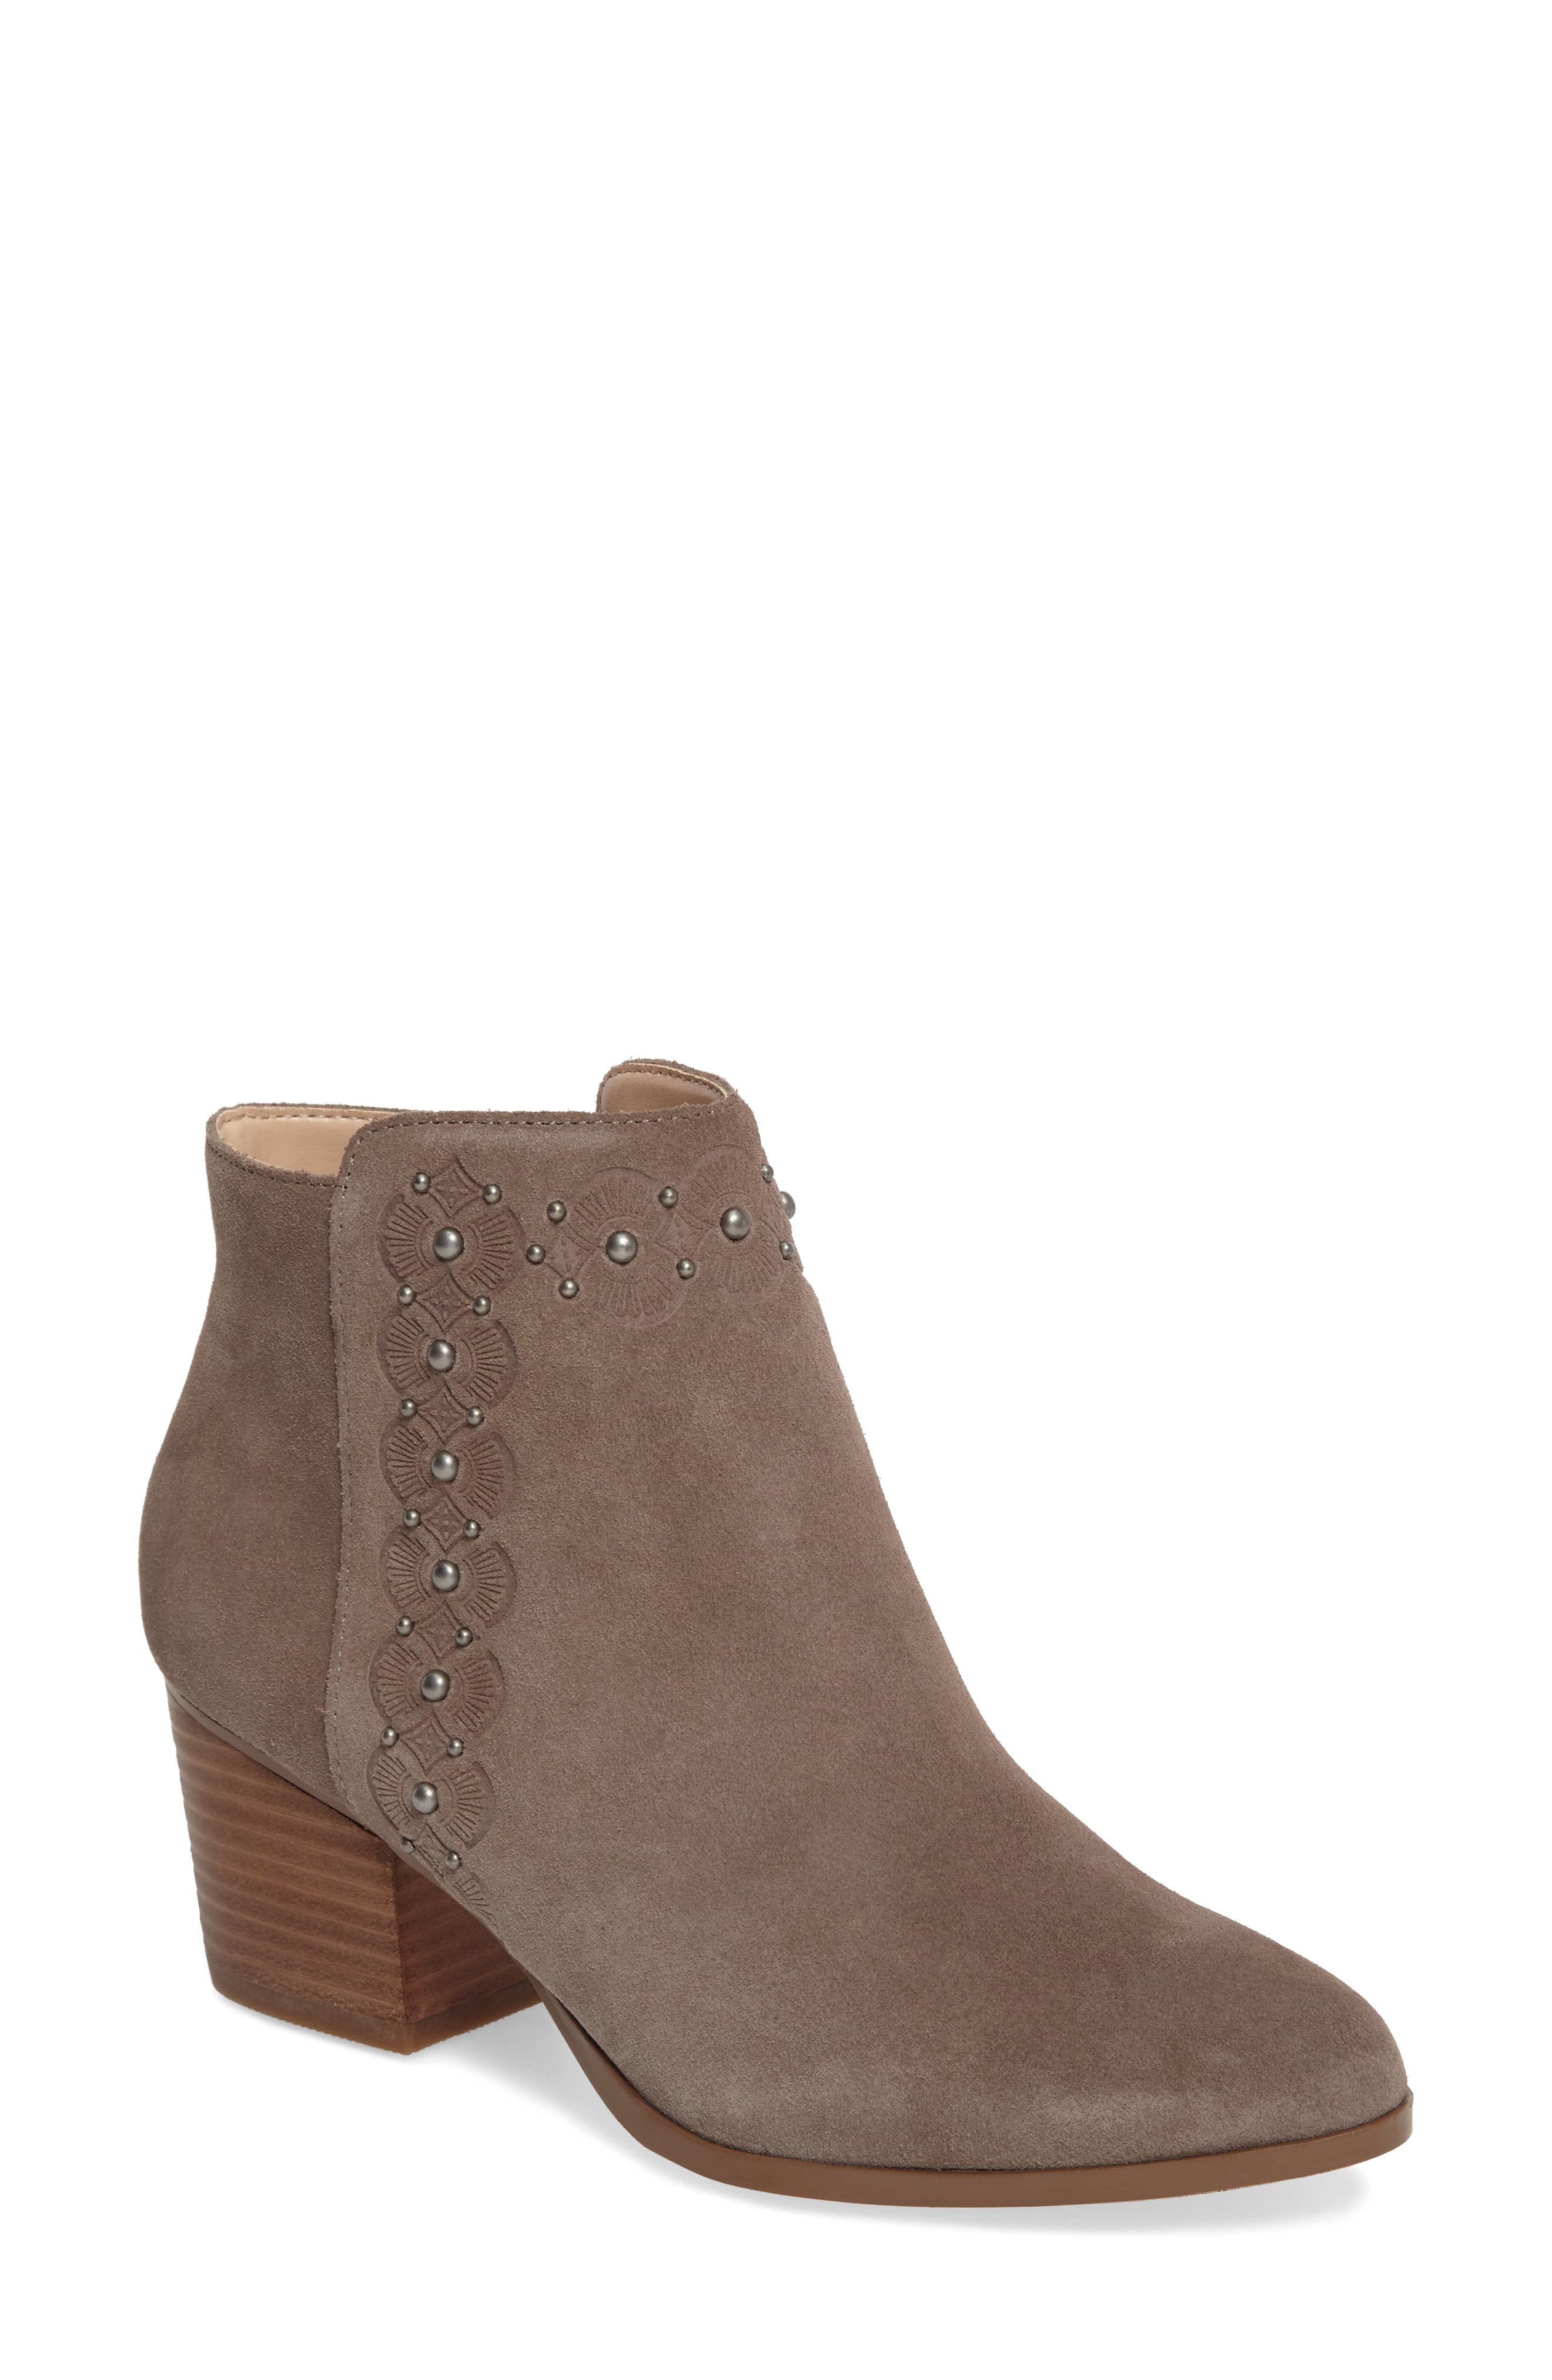 Gala Studded Embossed Bootie,                             Main thumbnail 1, color,                             Mushroom Suede